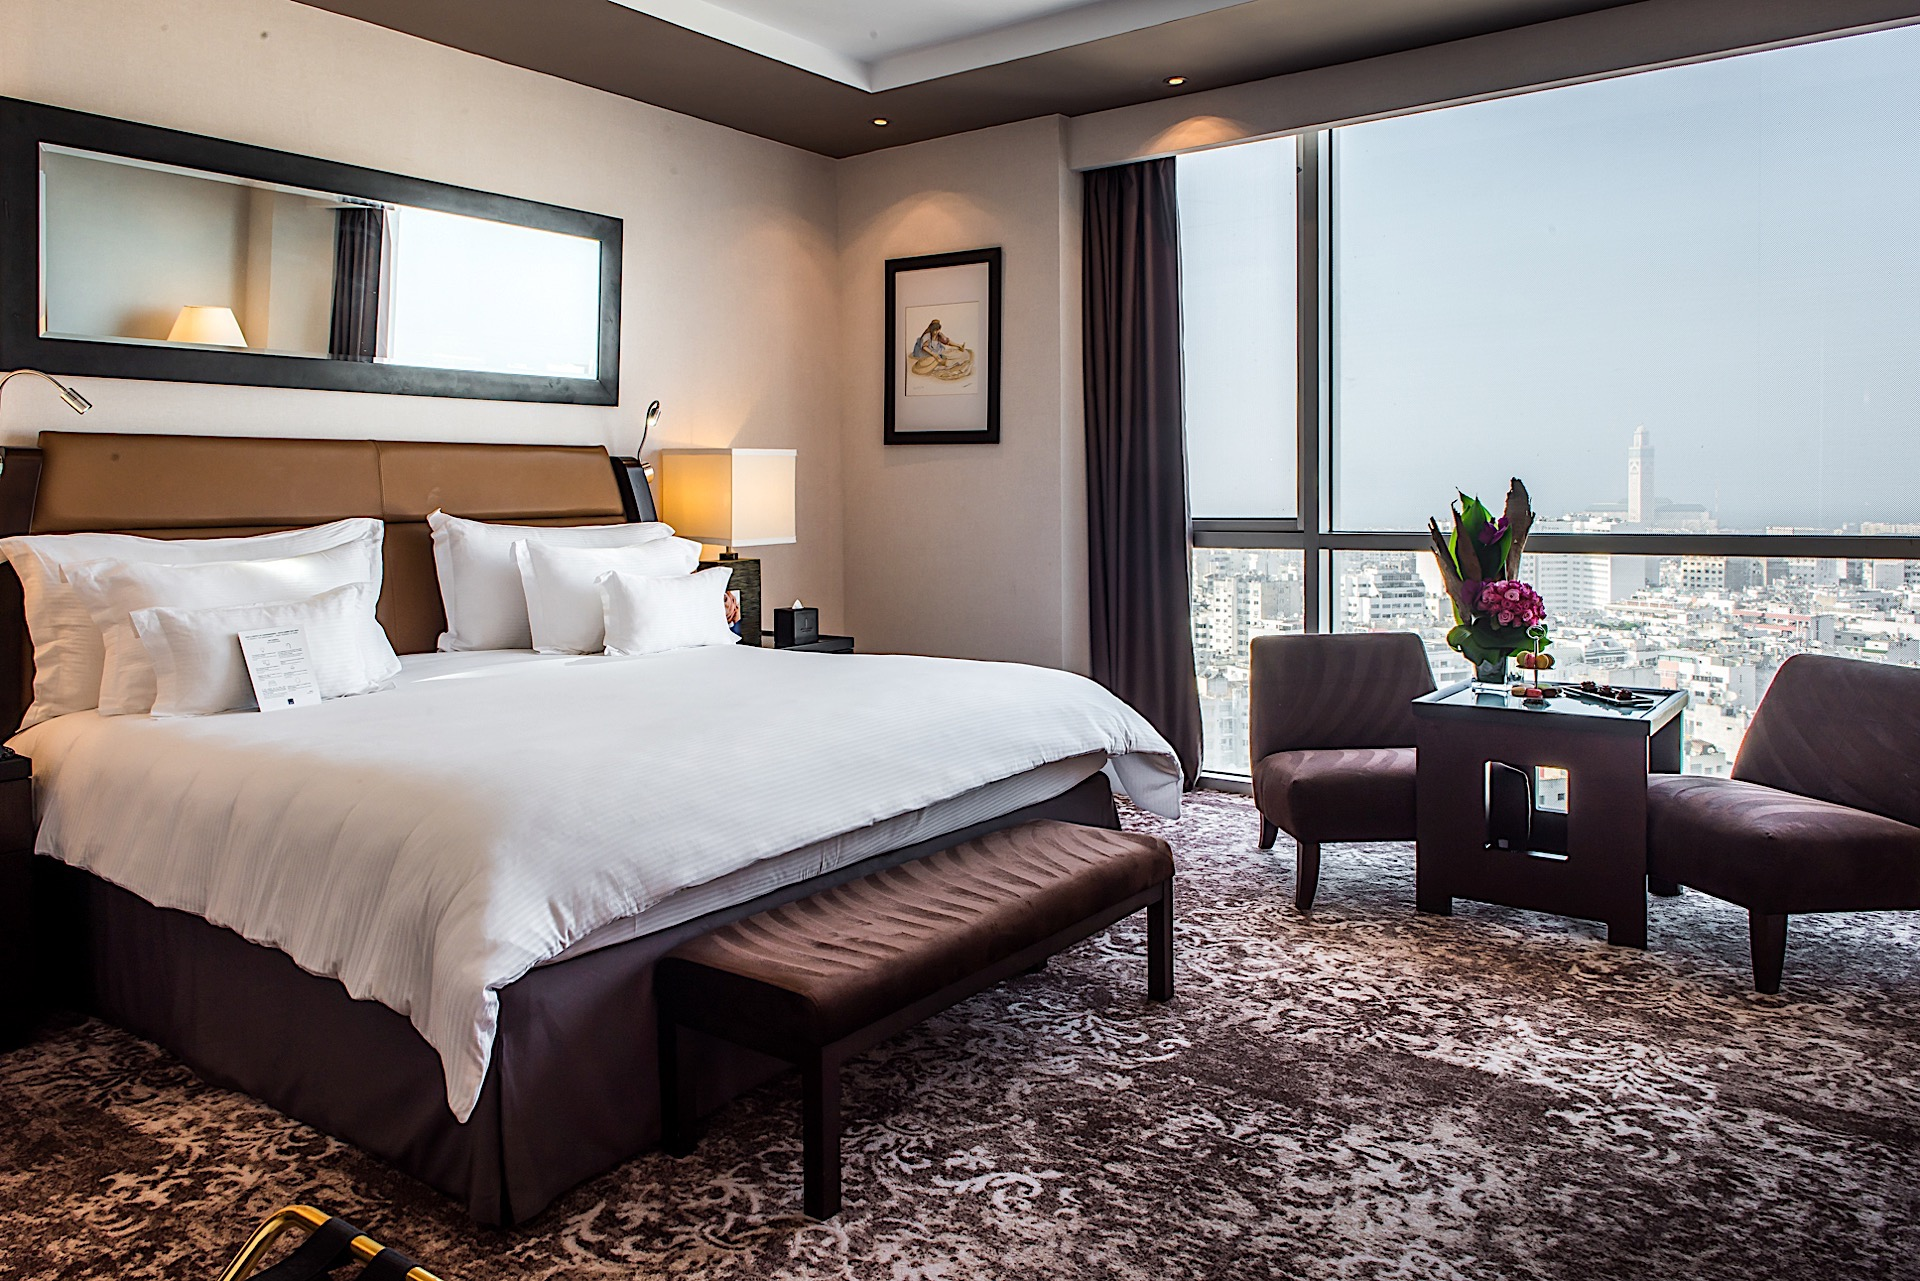 Deluxe Sky Suite at Kenzi Tower Hotel in central Casablanca, Mor